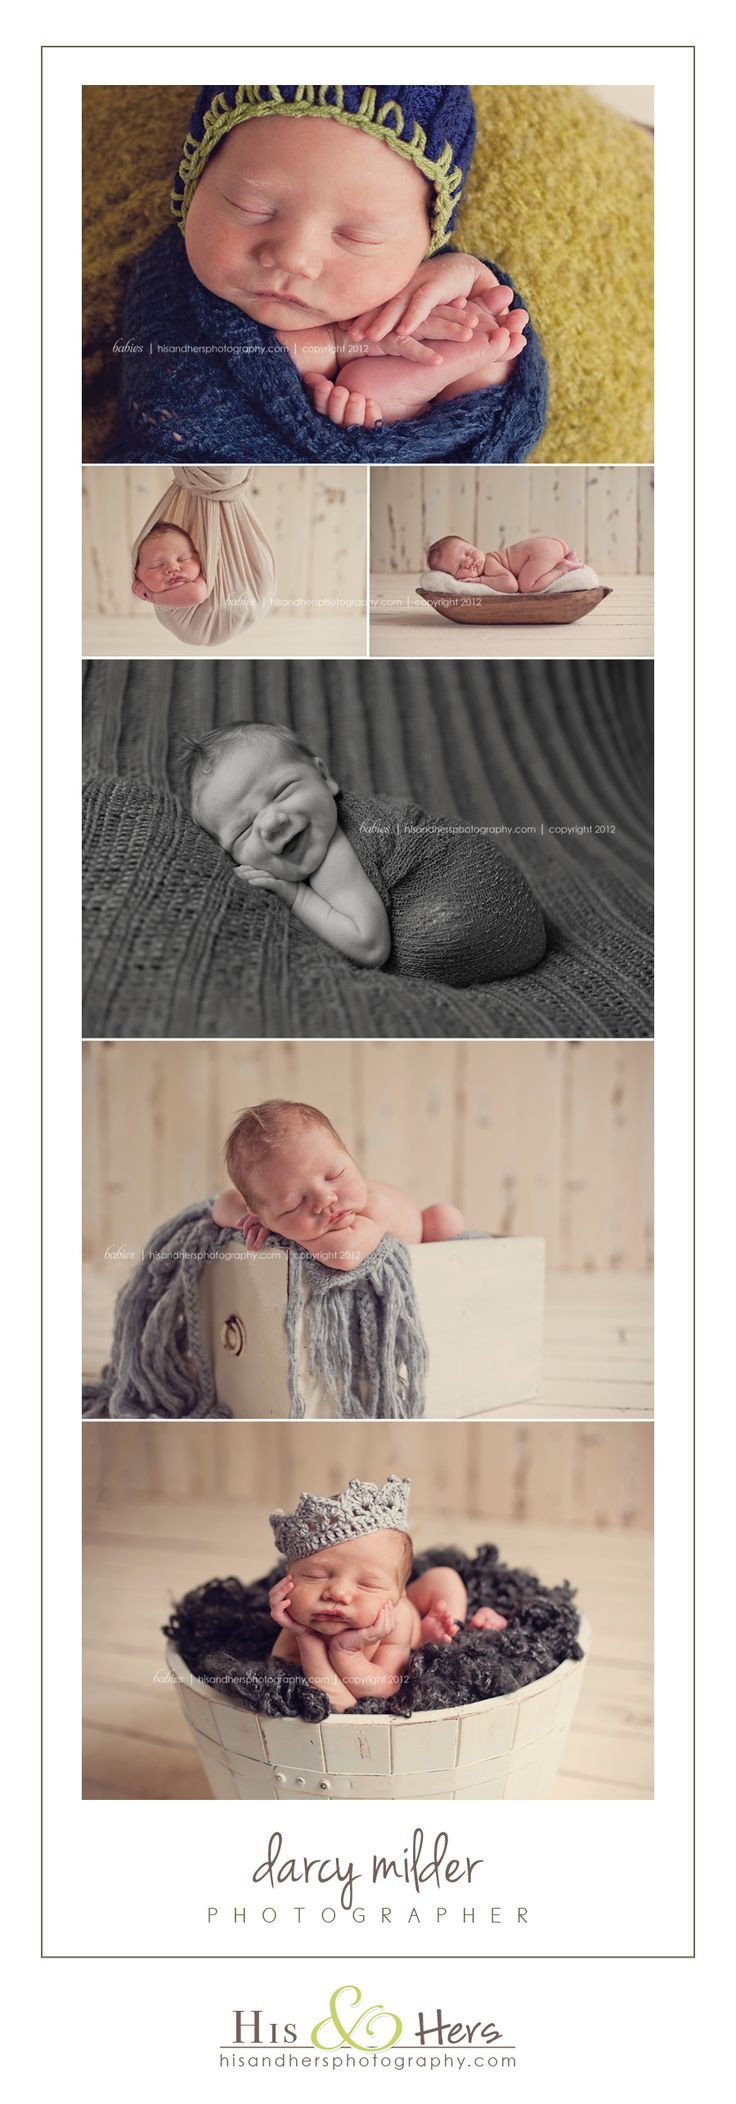 Iowa newborn photographer, Darcy Milder | His & Hers